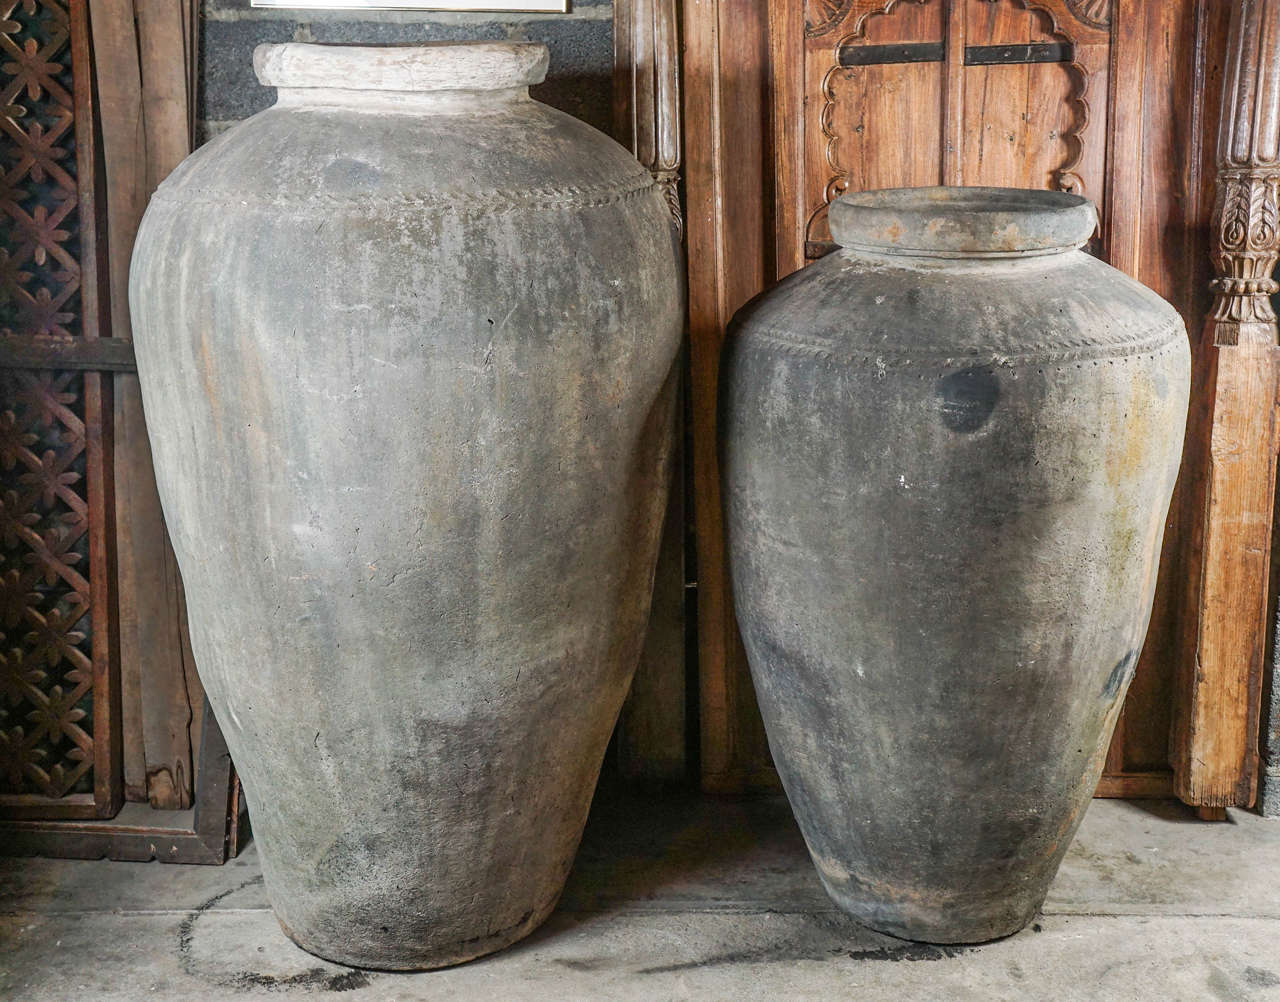 """Monumental clay pots from Northern India, can be used as a garden sculptures. Size: Large: 61 """"H X39 """" Diameter Price: $2500  Small: 51""""H X32"""" Diameter Price: $2200."""